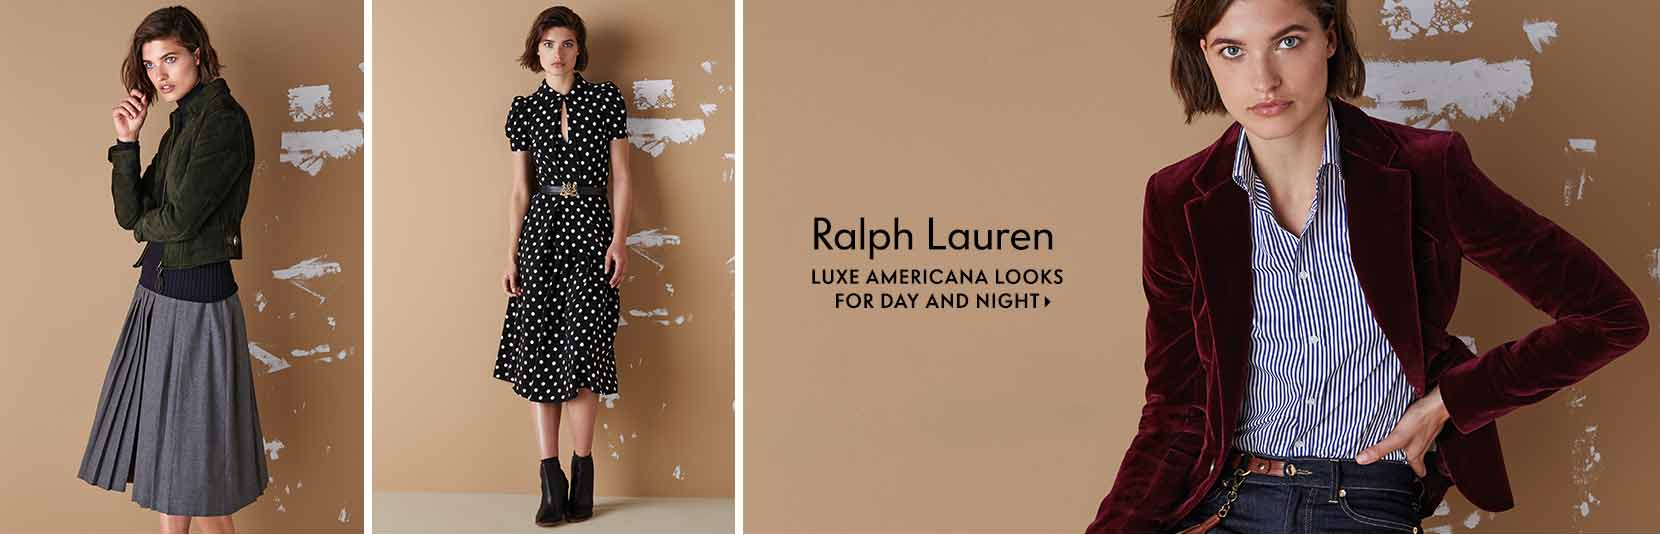 Ralph Lauren Luxe Americana looks for day and night